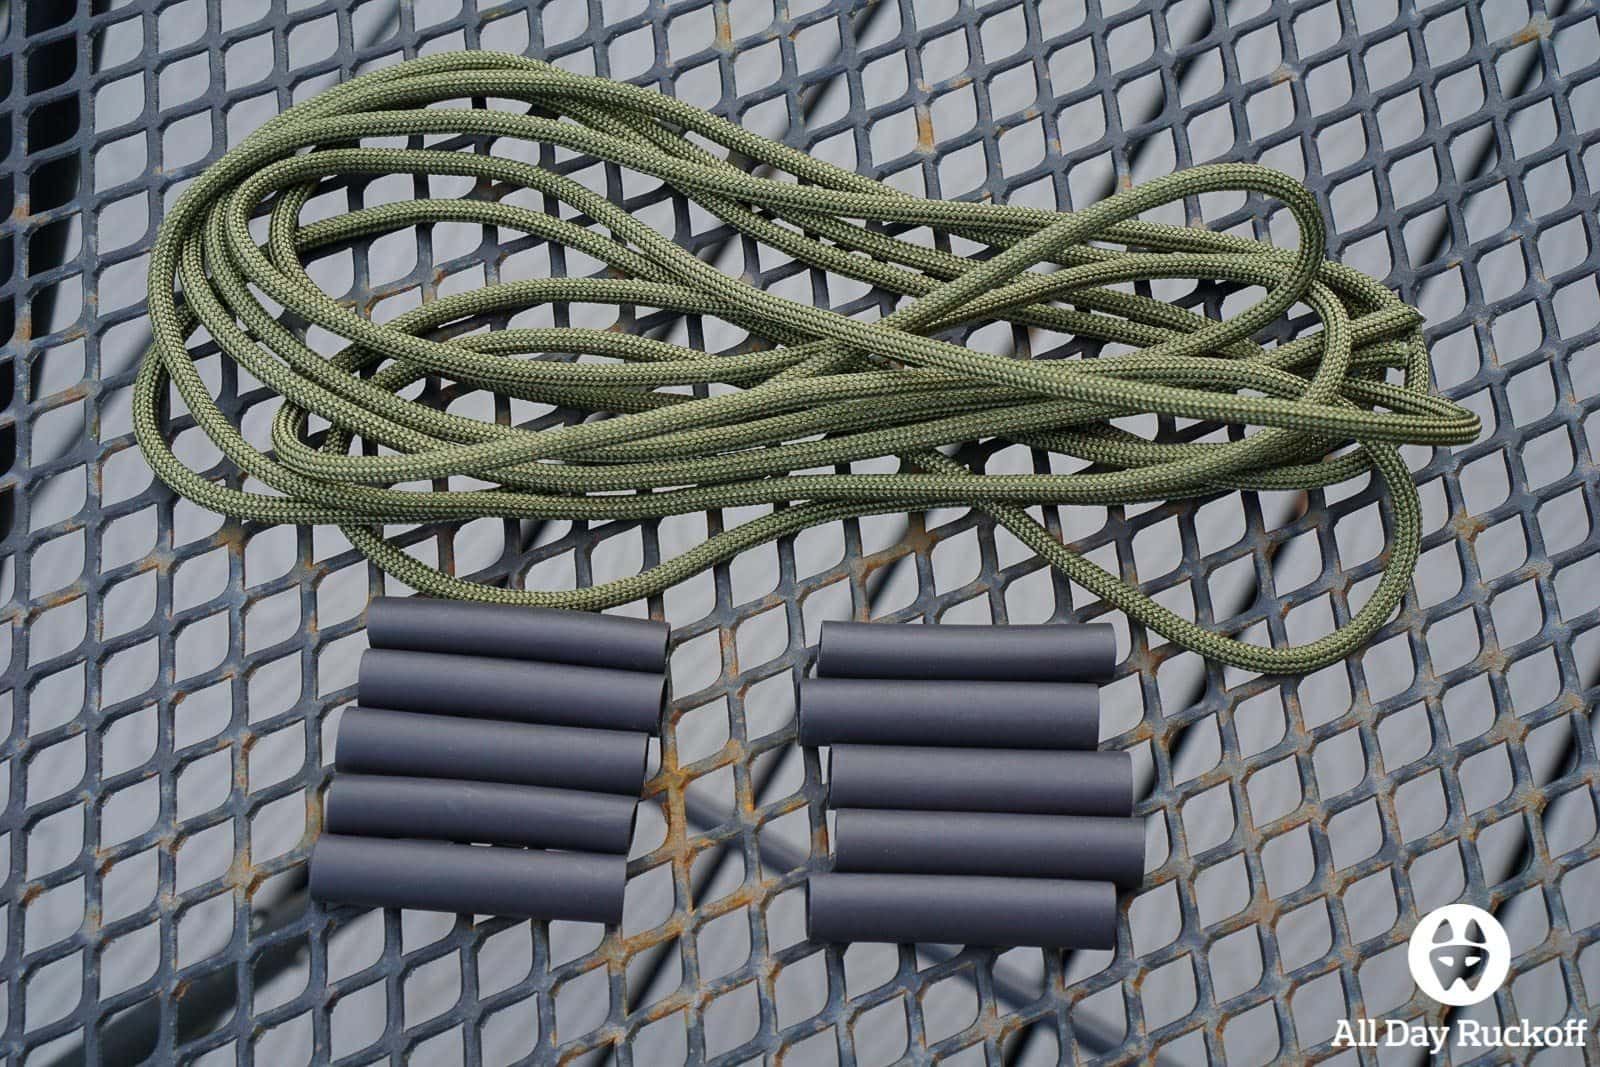 GORUCK Zipper Pull Kit - Spread Out